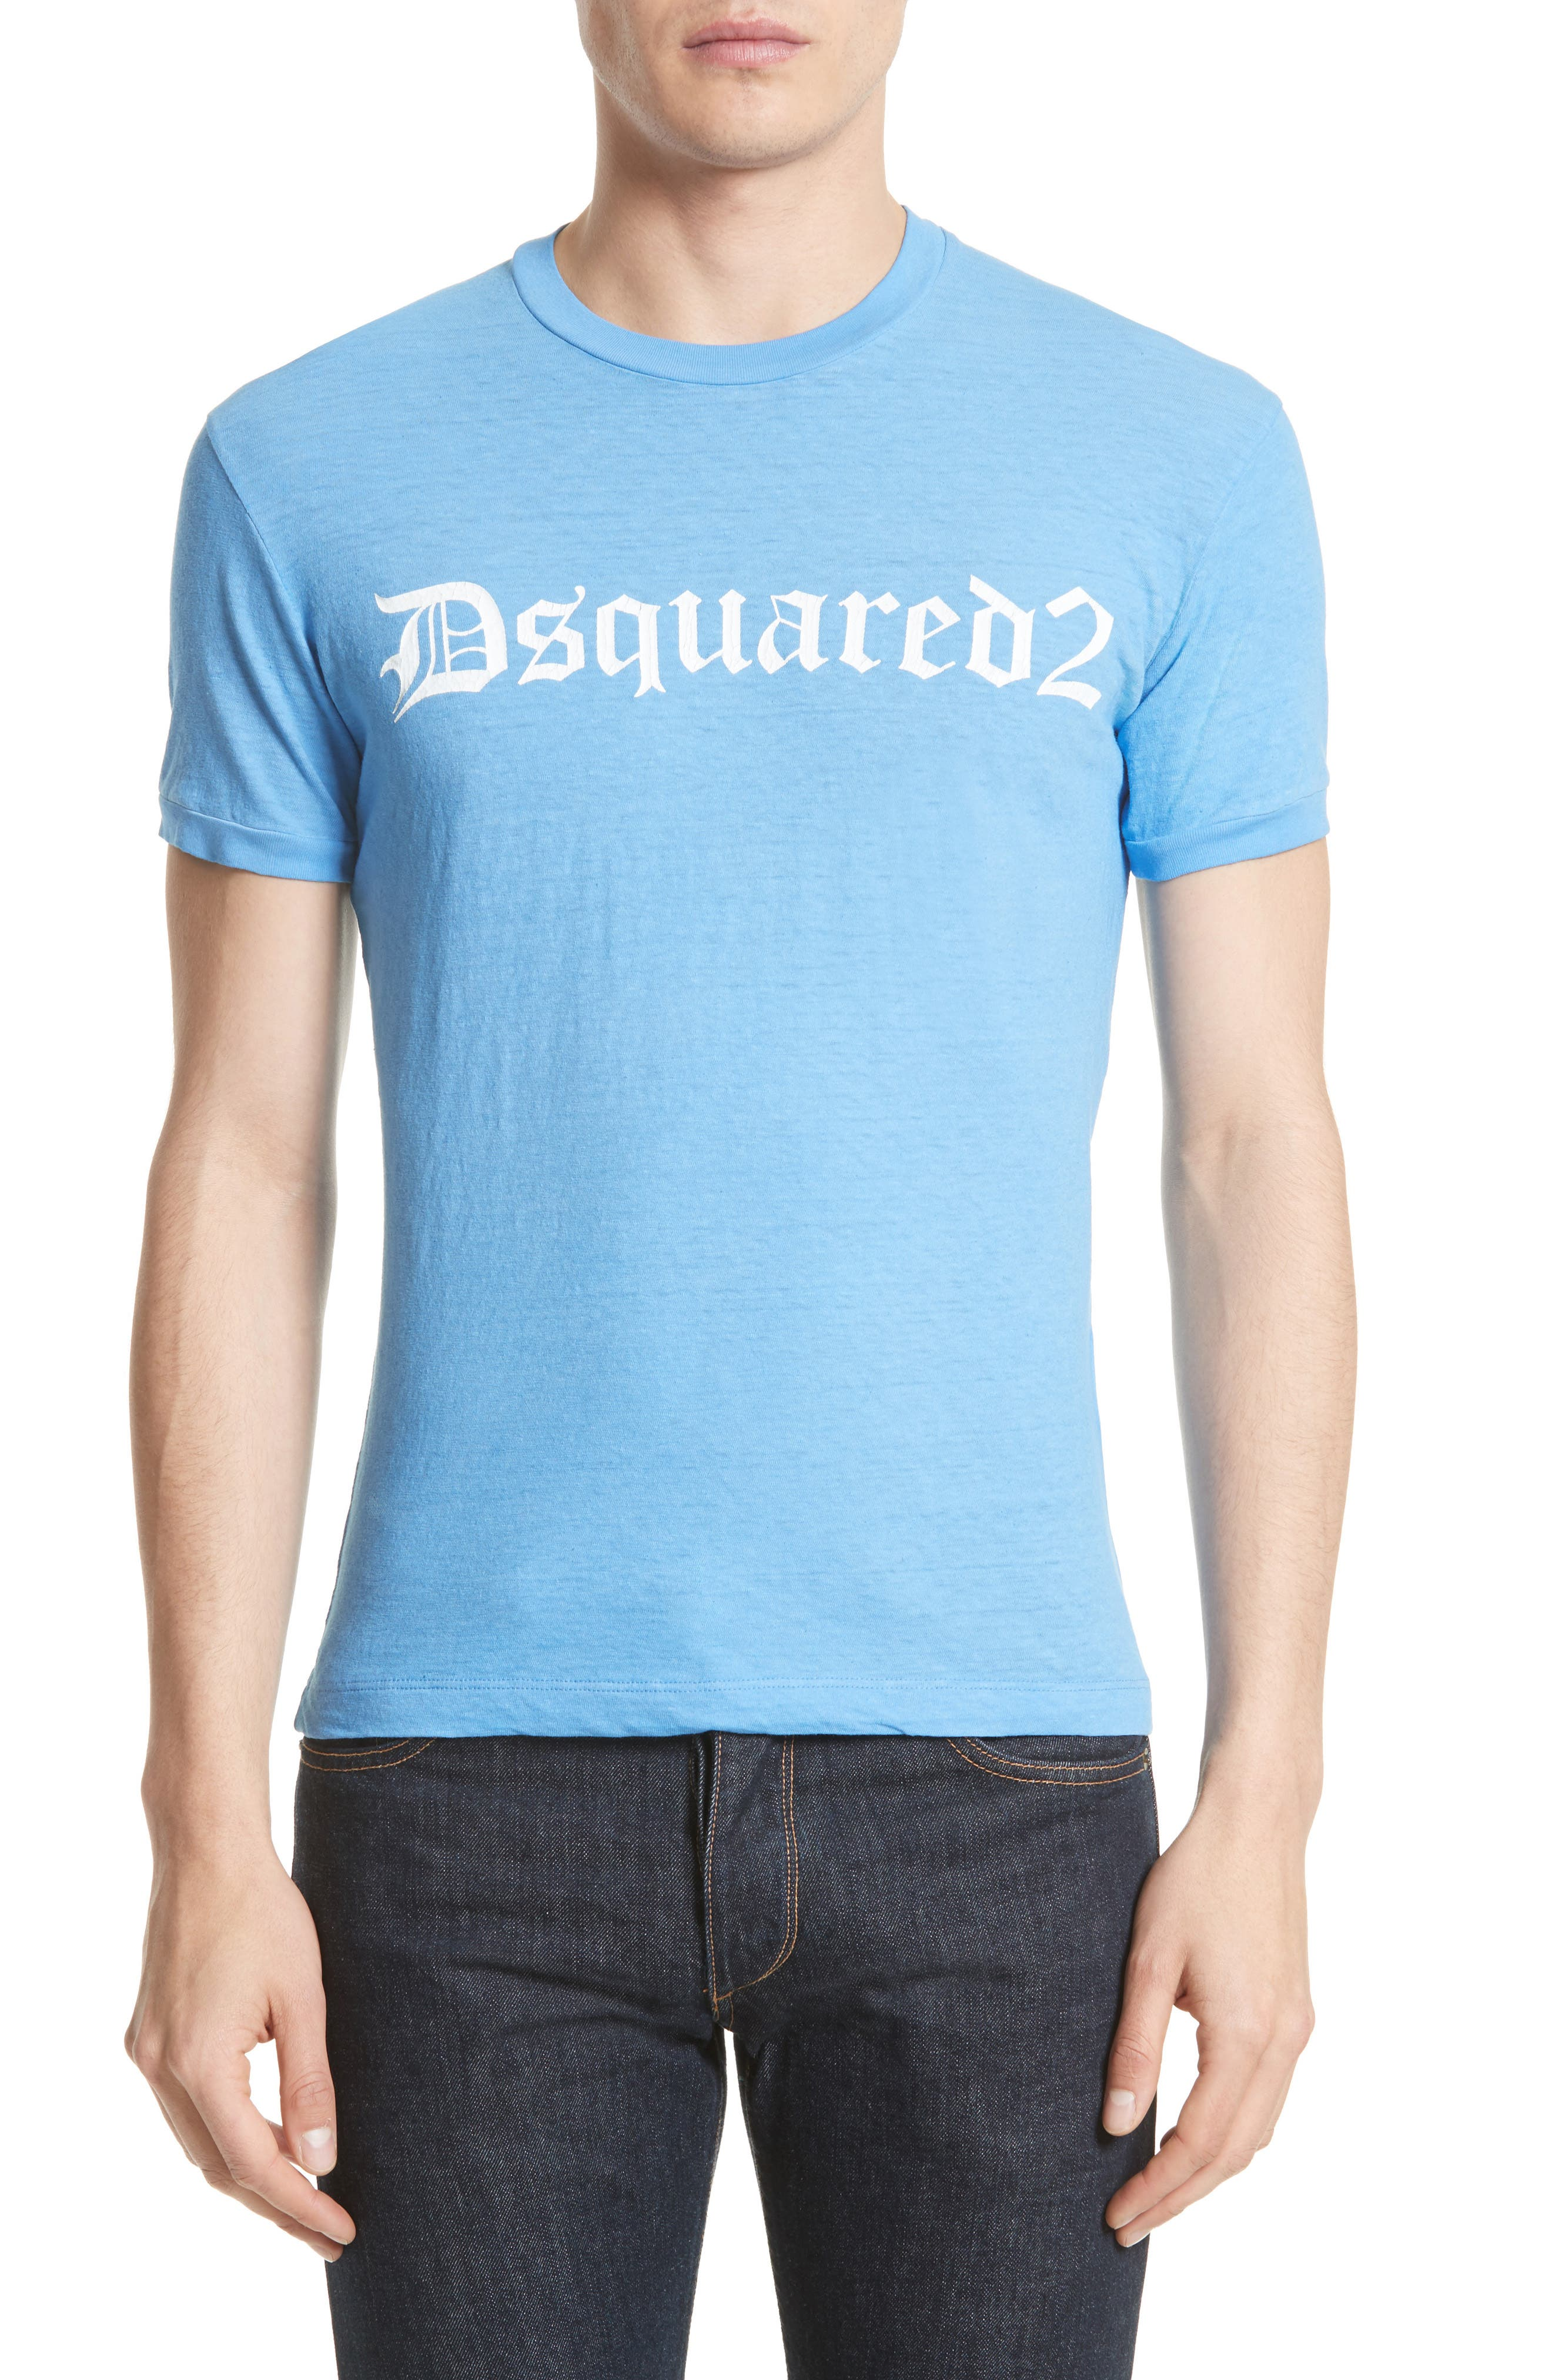 Dquared2 Cotton T-Shirt